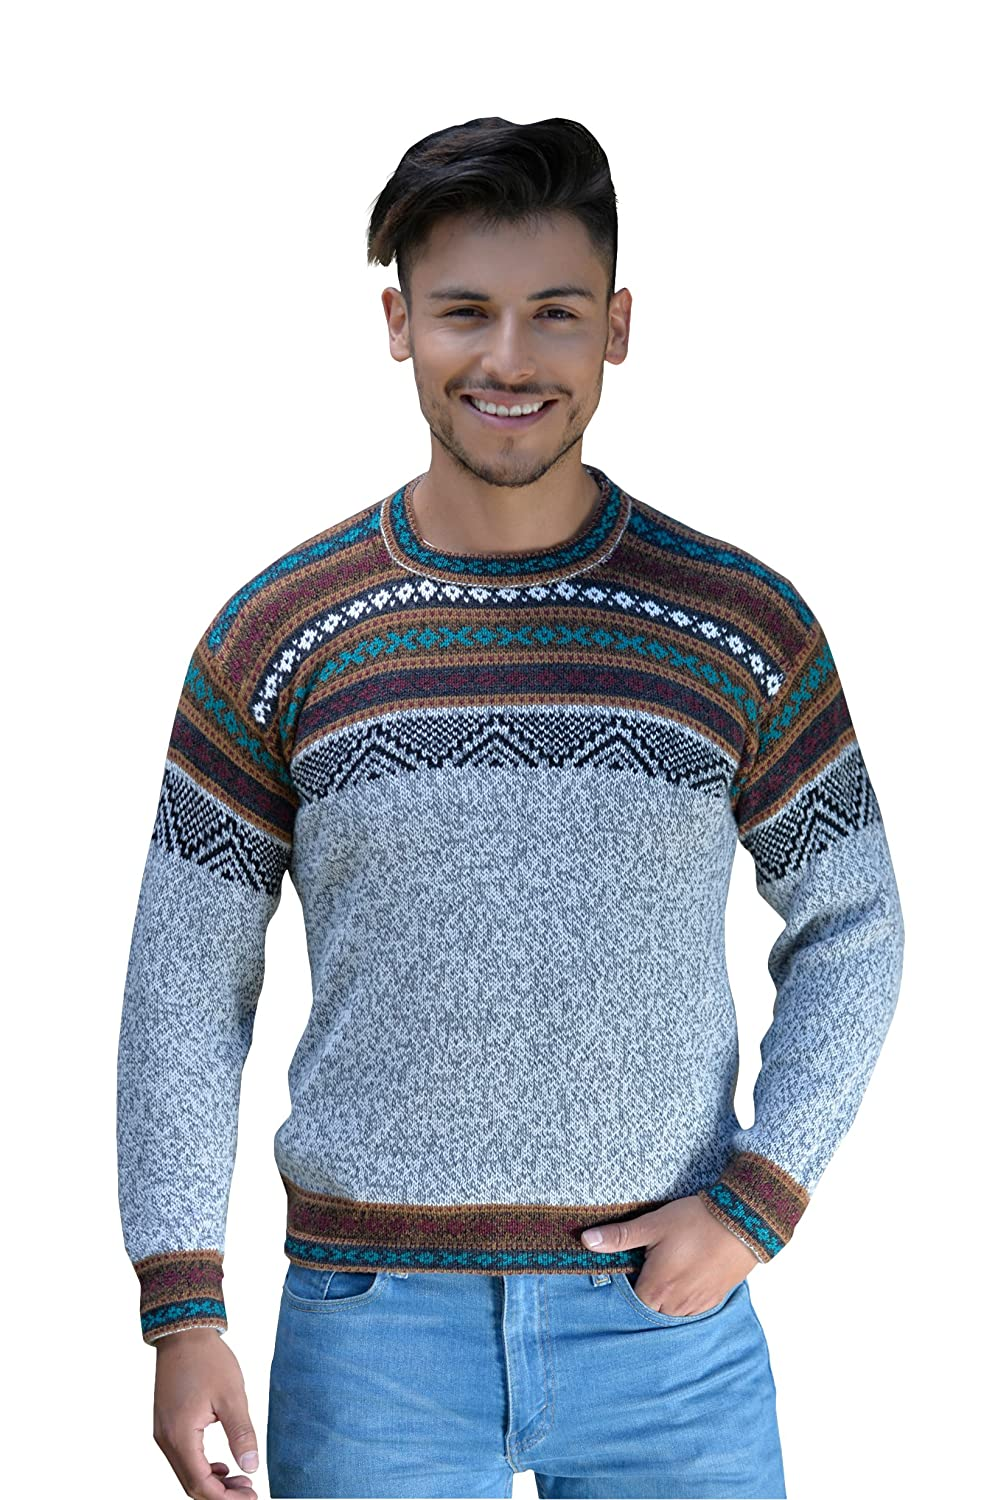 c2006ec66df739 Gamboa - Hand Knitted Alpaca Sweater for Men - Light Grey with Earth Tones  at Amazon Men's Clothing store: